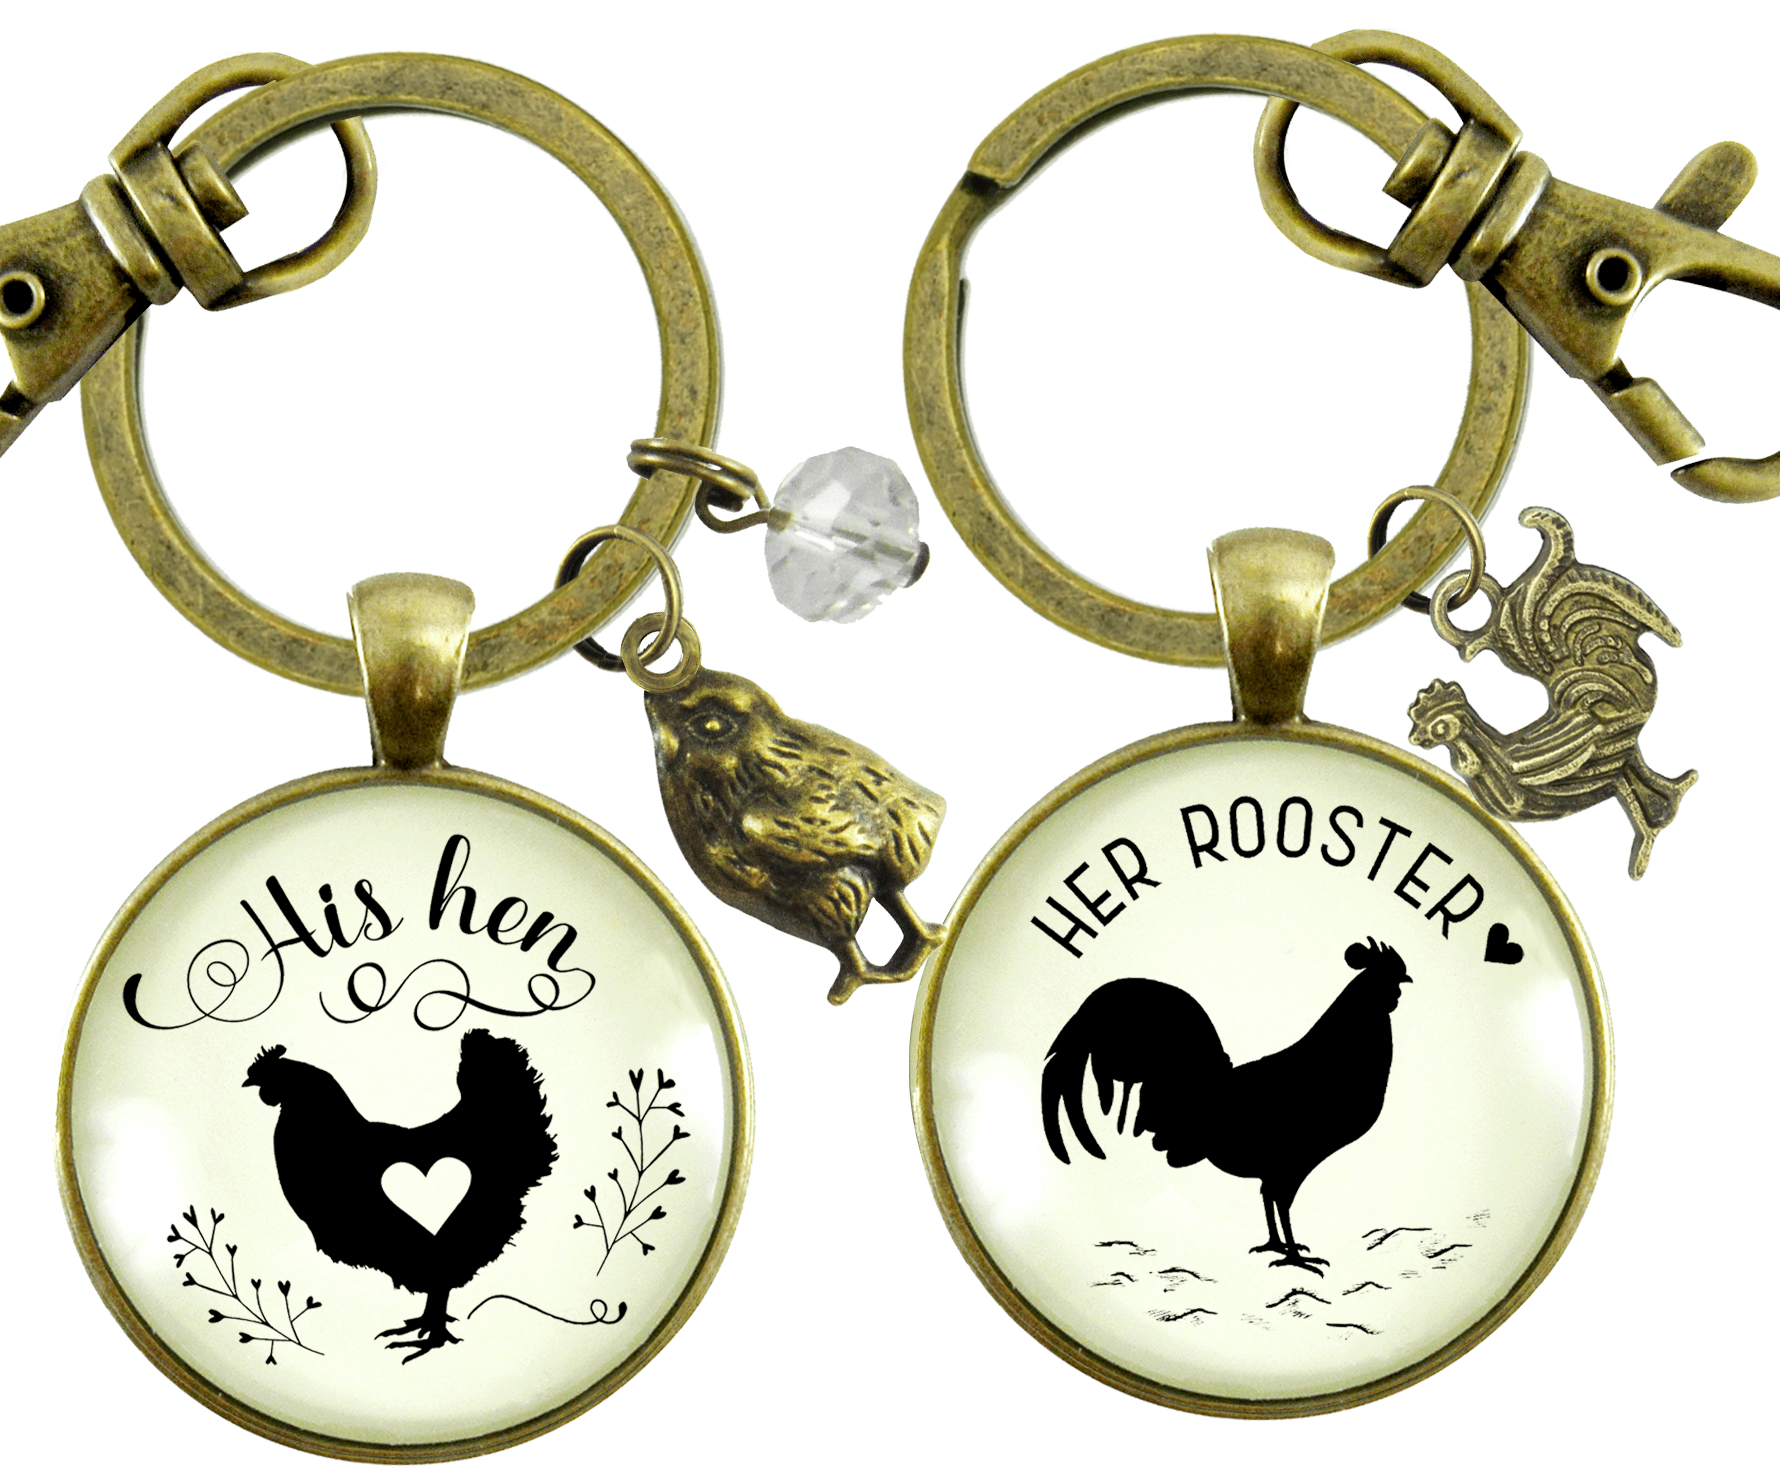 His Hen Her Rooster Keychain Set For Chicken Family Vintage Inspired Jewlery - Gutsy Goodness Handmade Jewelry